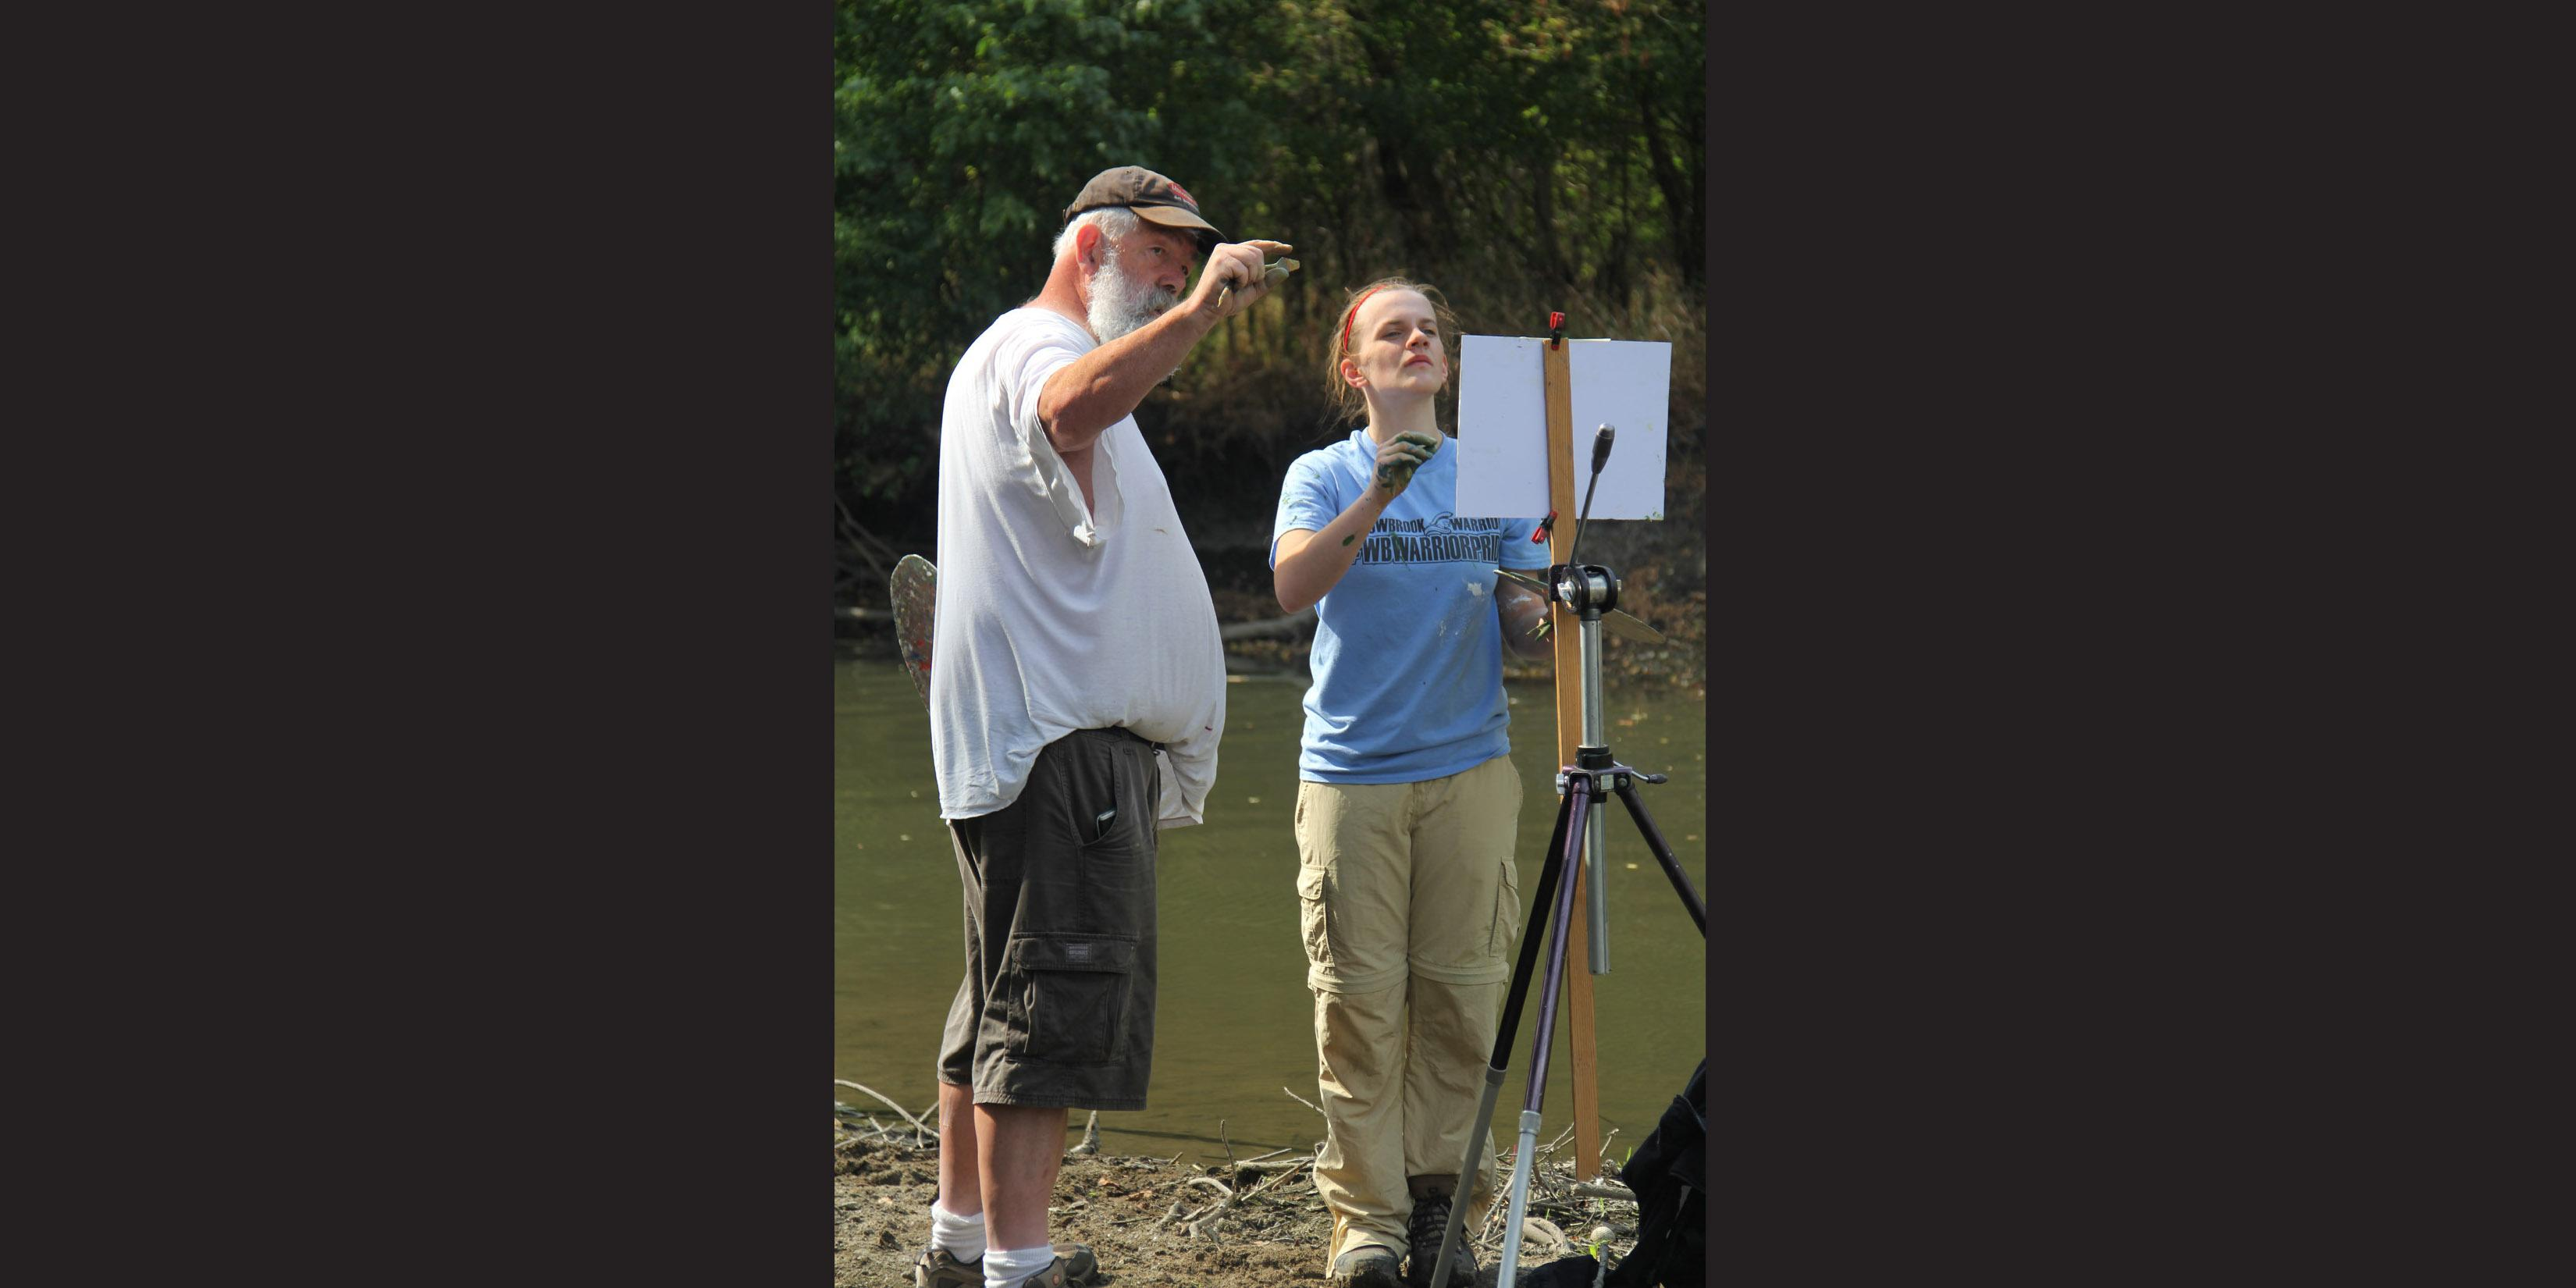 Professional artist teaches Willowbrook students about 'en plein air' painting